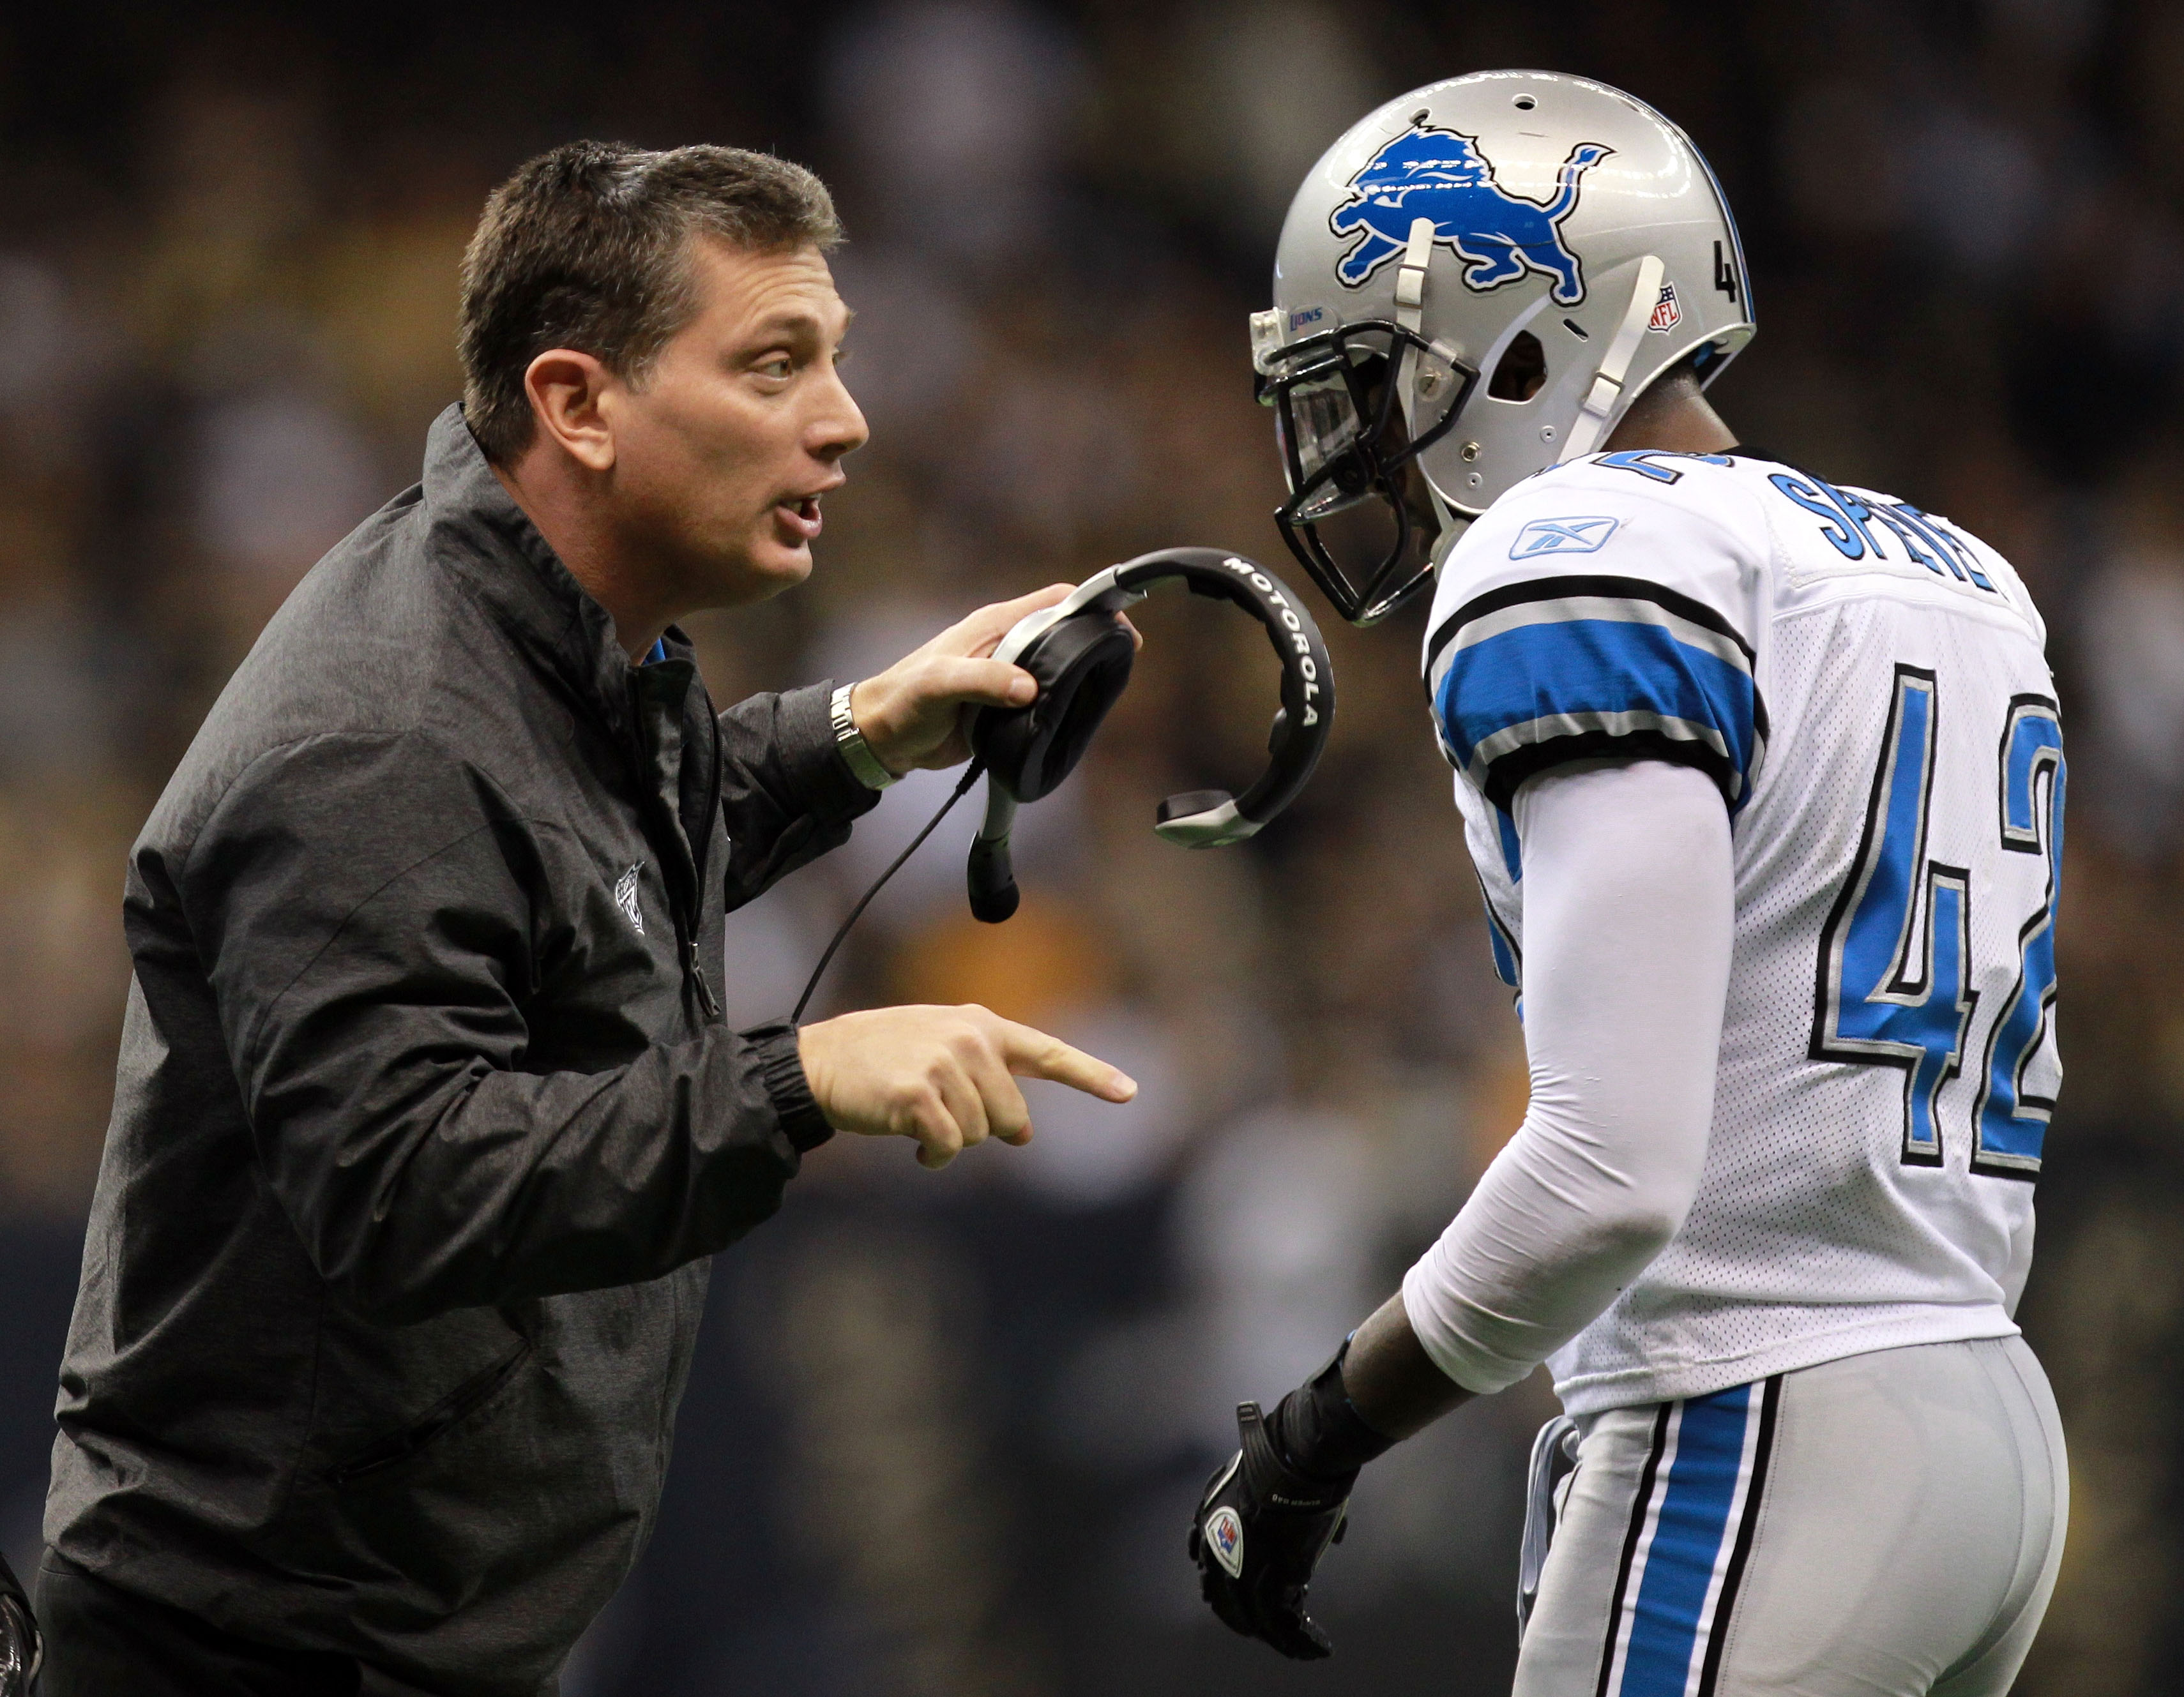 The Lions are threatening to undo the progress they've made under Jim Schwartz. (AP)